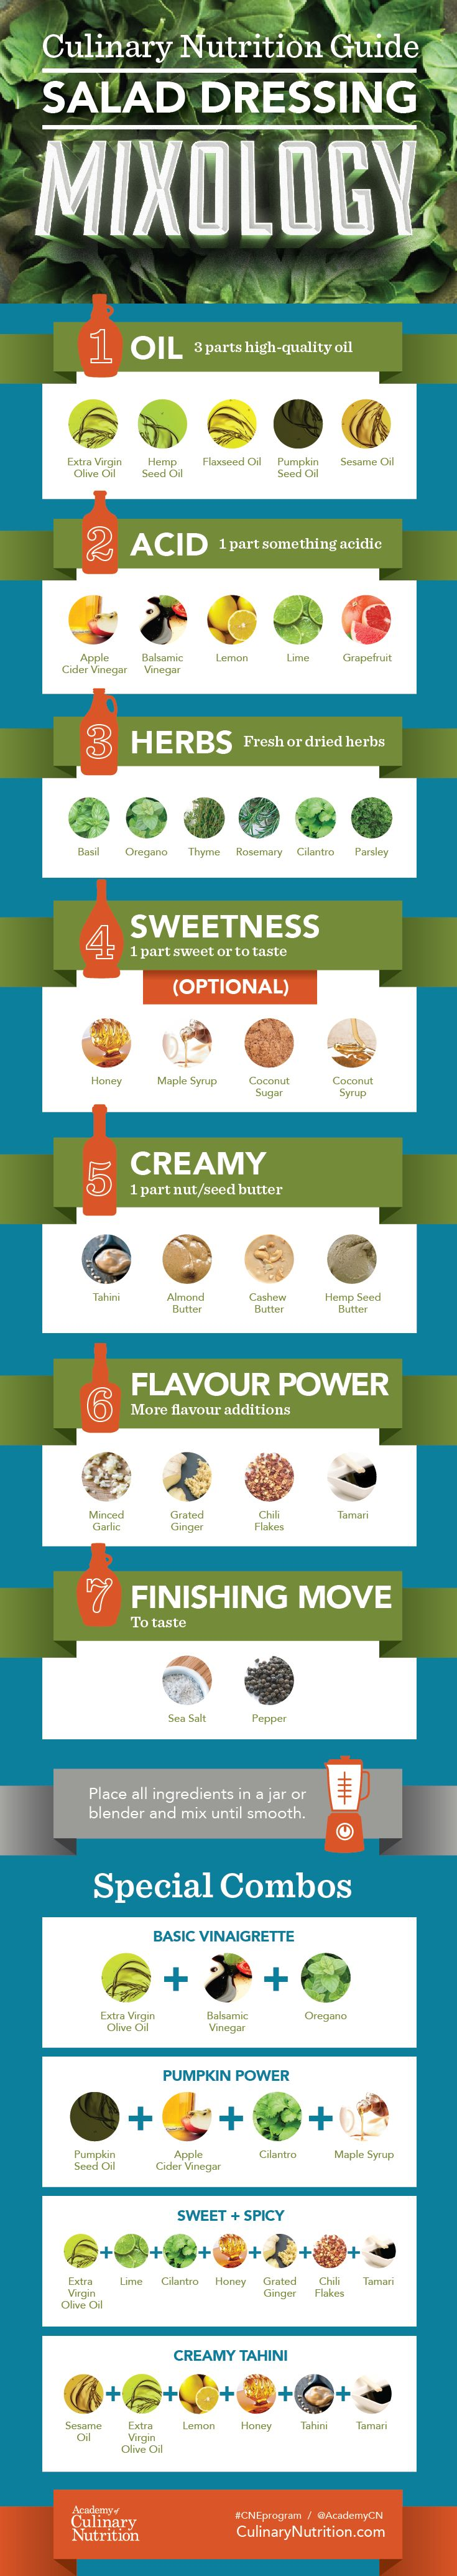 Recipes for healthy homemade salad dressings